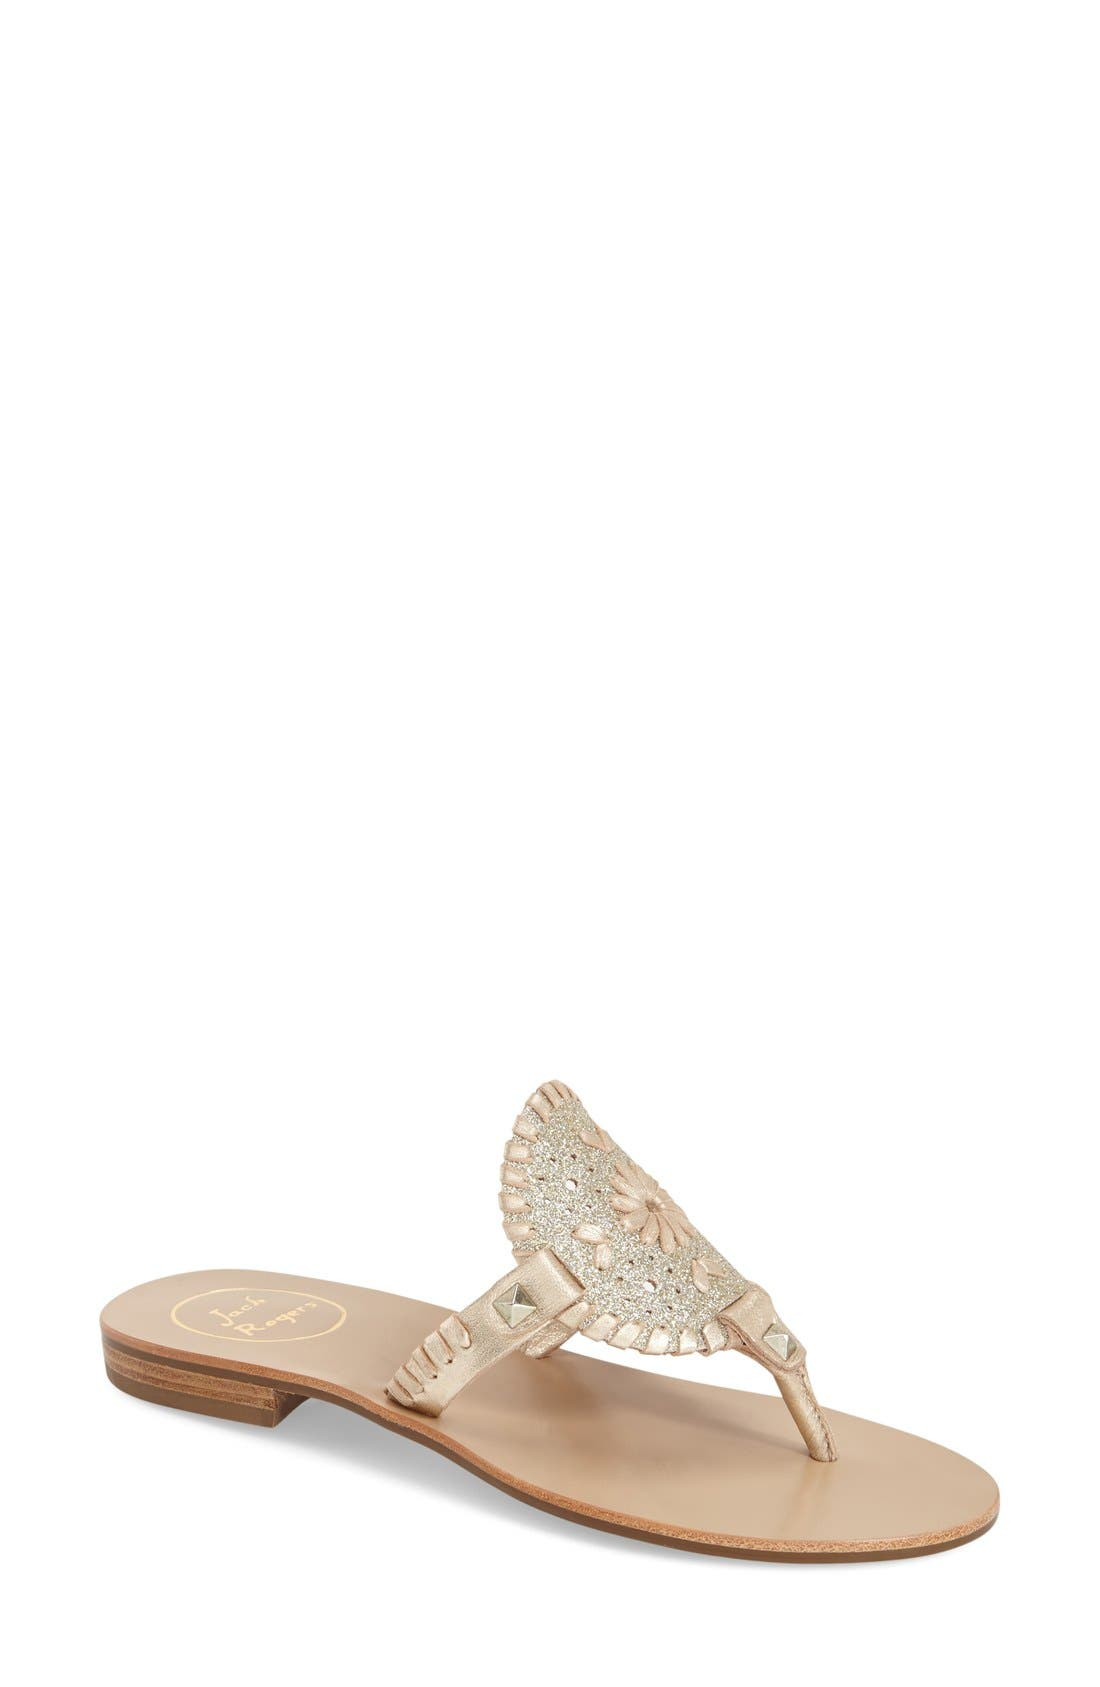 Alternate Image 1 Selected - Jack Rogers 'Georgica' Sandal (Women)